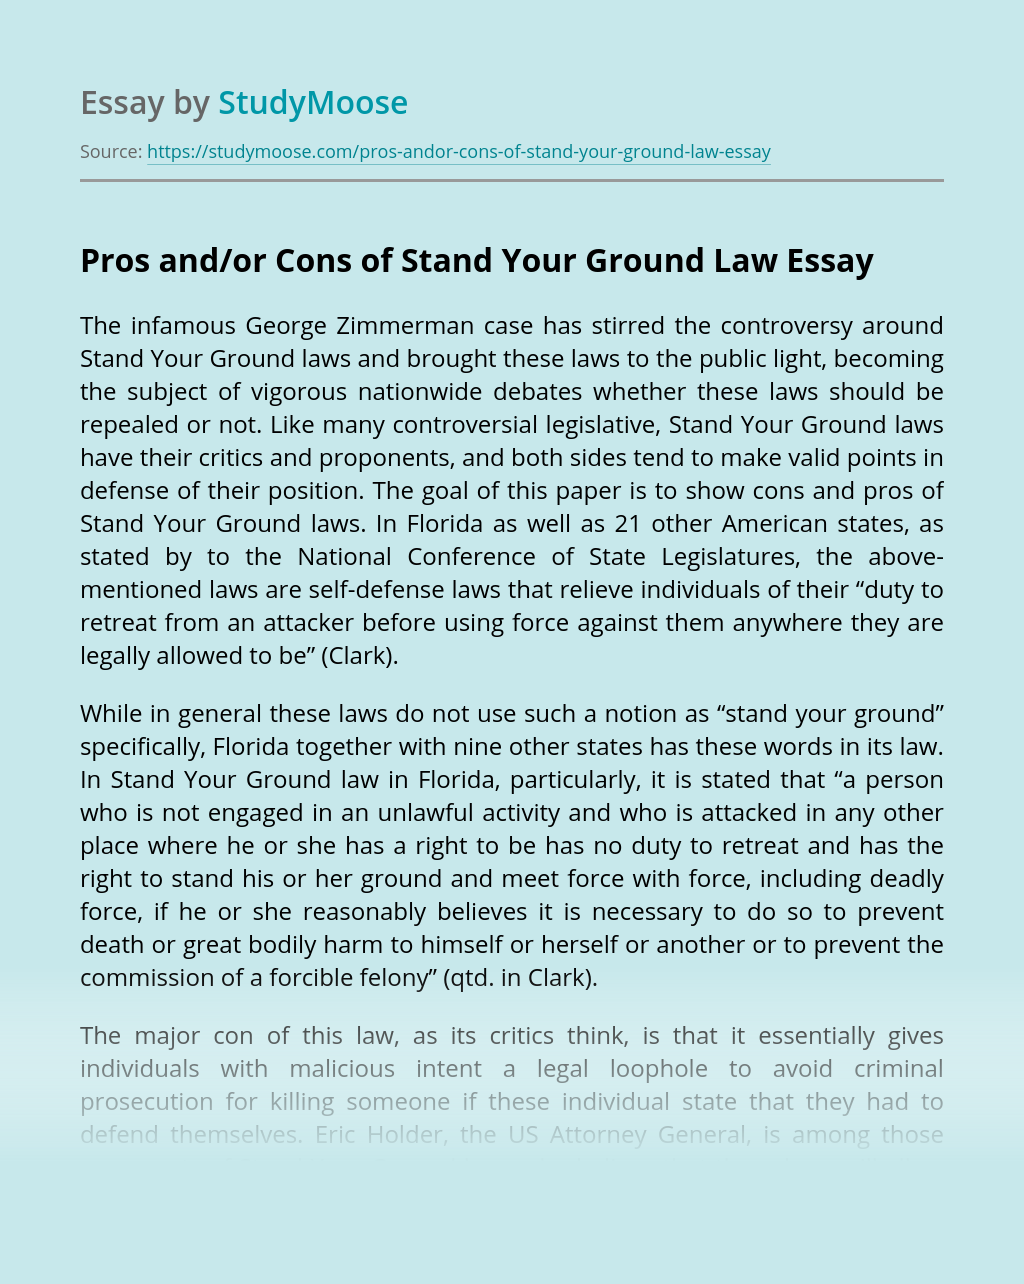 Pros and/or Cons of Stand Your Ground Law